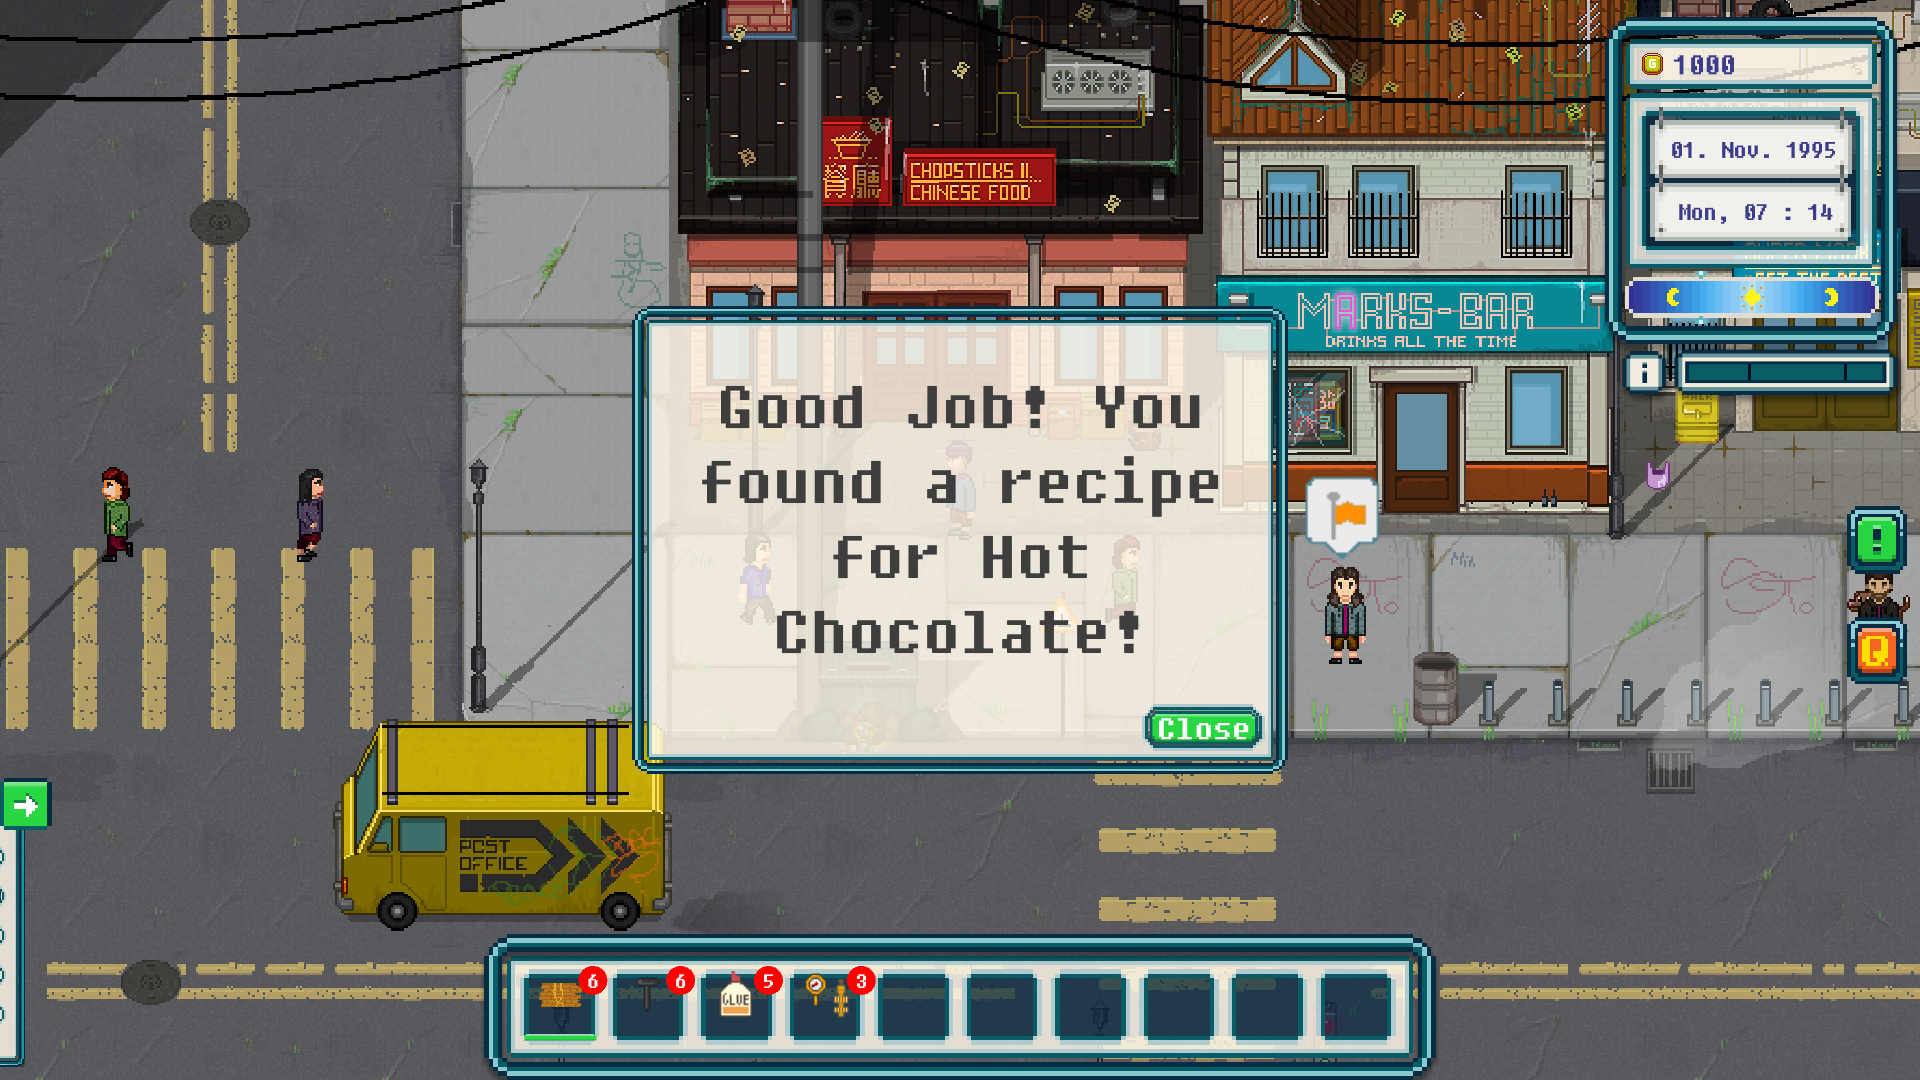 Urban Tale - Finding recipes